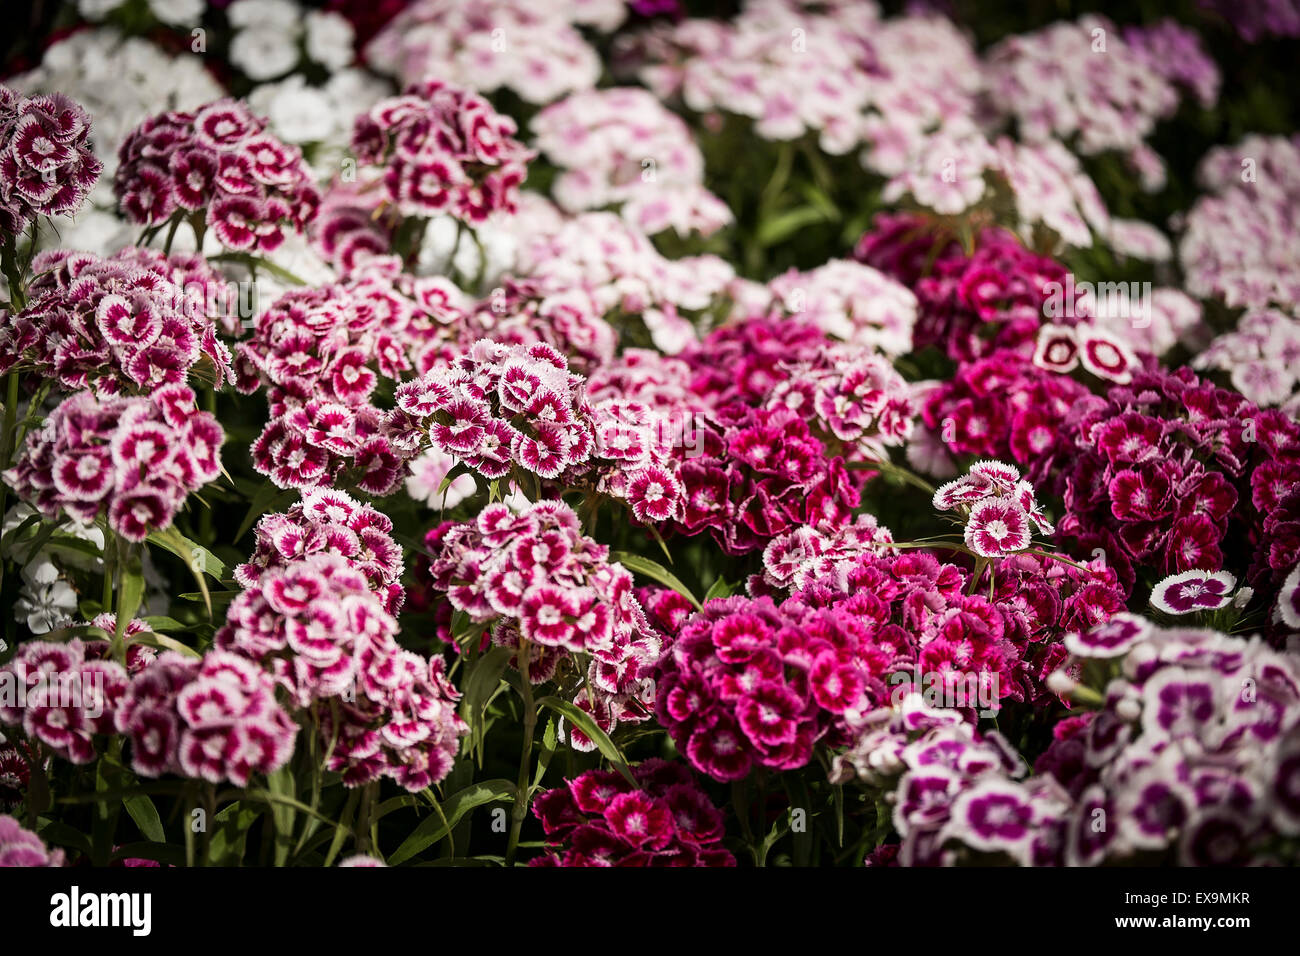 A bed of Sweet William flowers Dianthus barbarous in a garden in Cornwall. - Stock Image